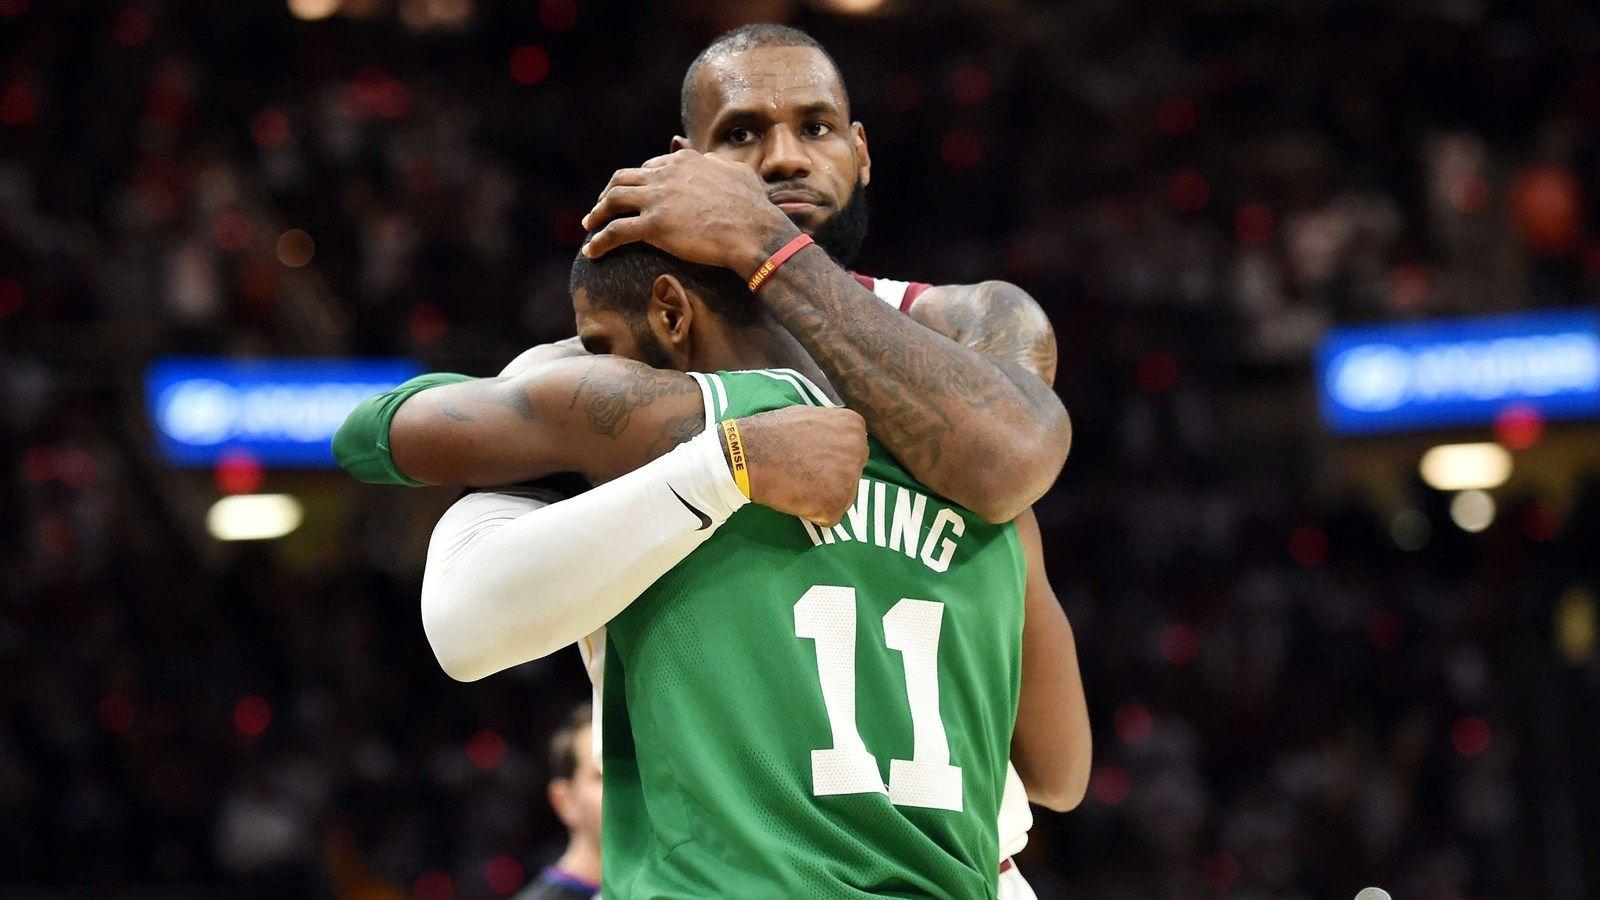 WATCH: LeBron James, Kyrie Irving hug it out after game ...